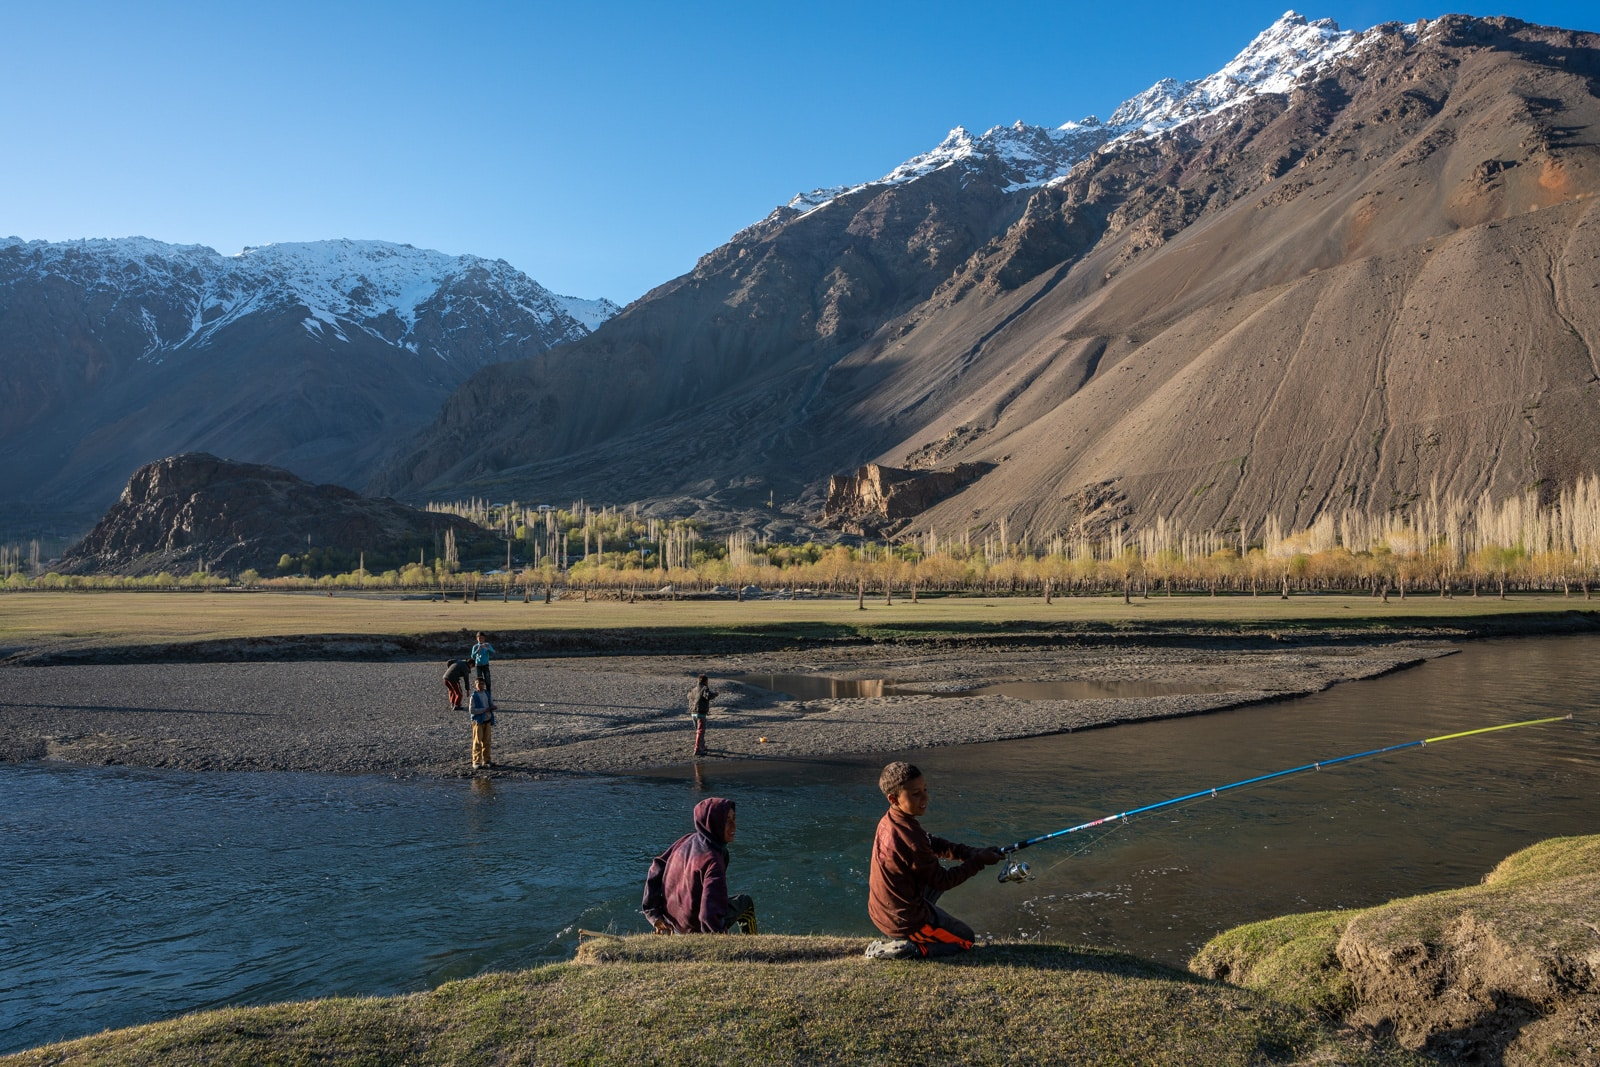 Young boys fishing in Phander, Gilgit Baltistan